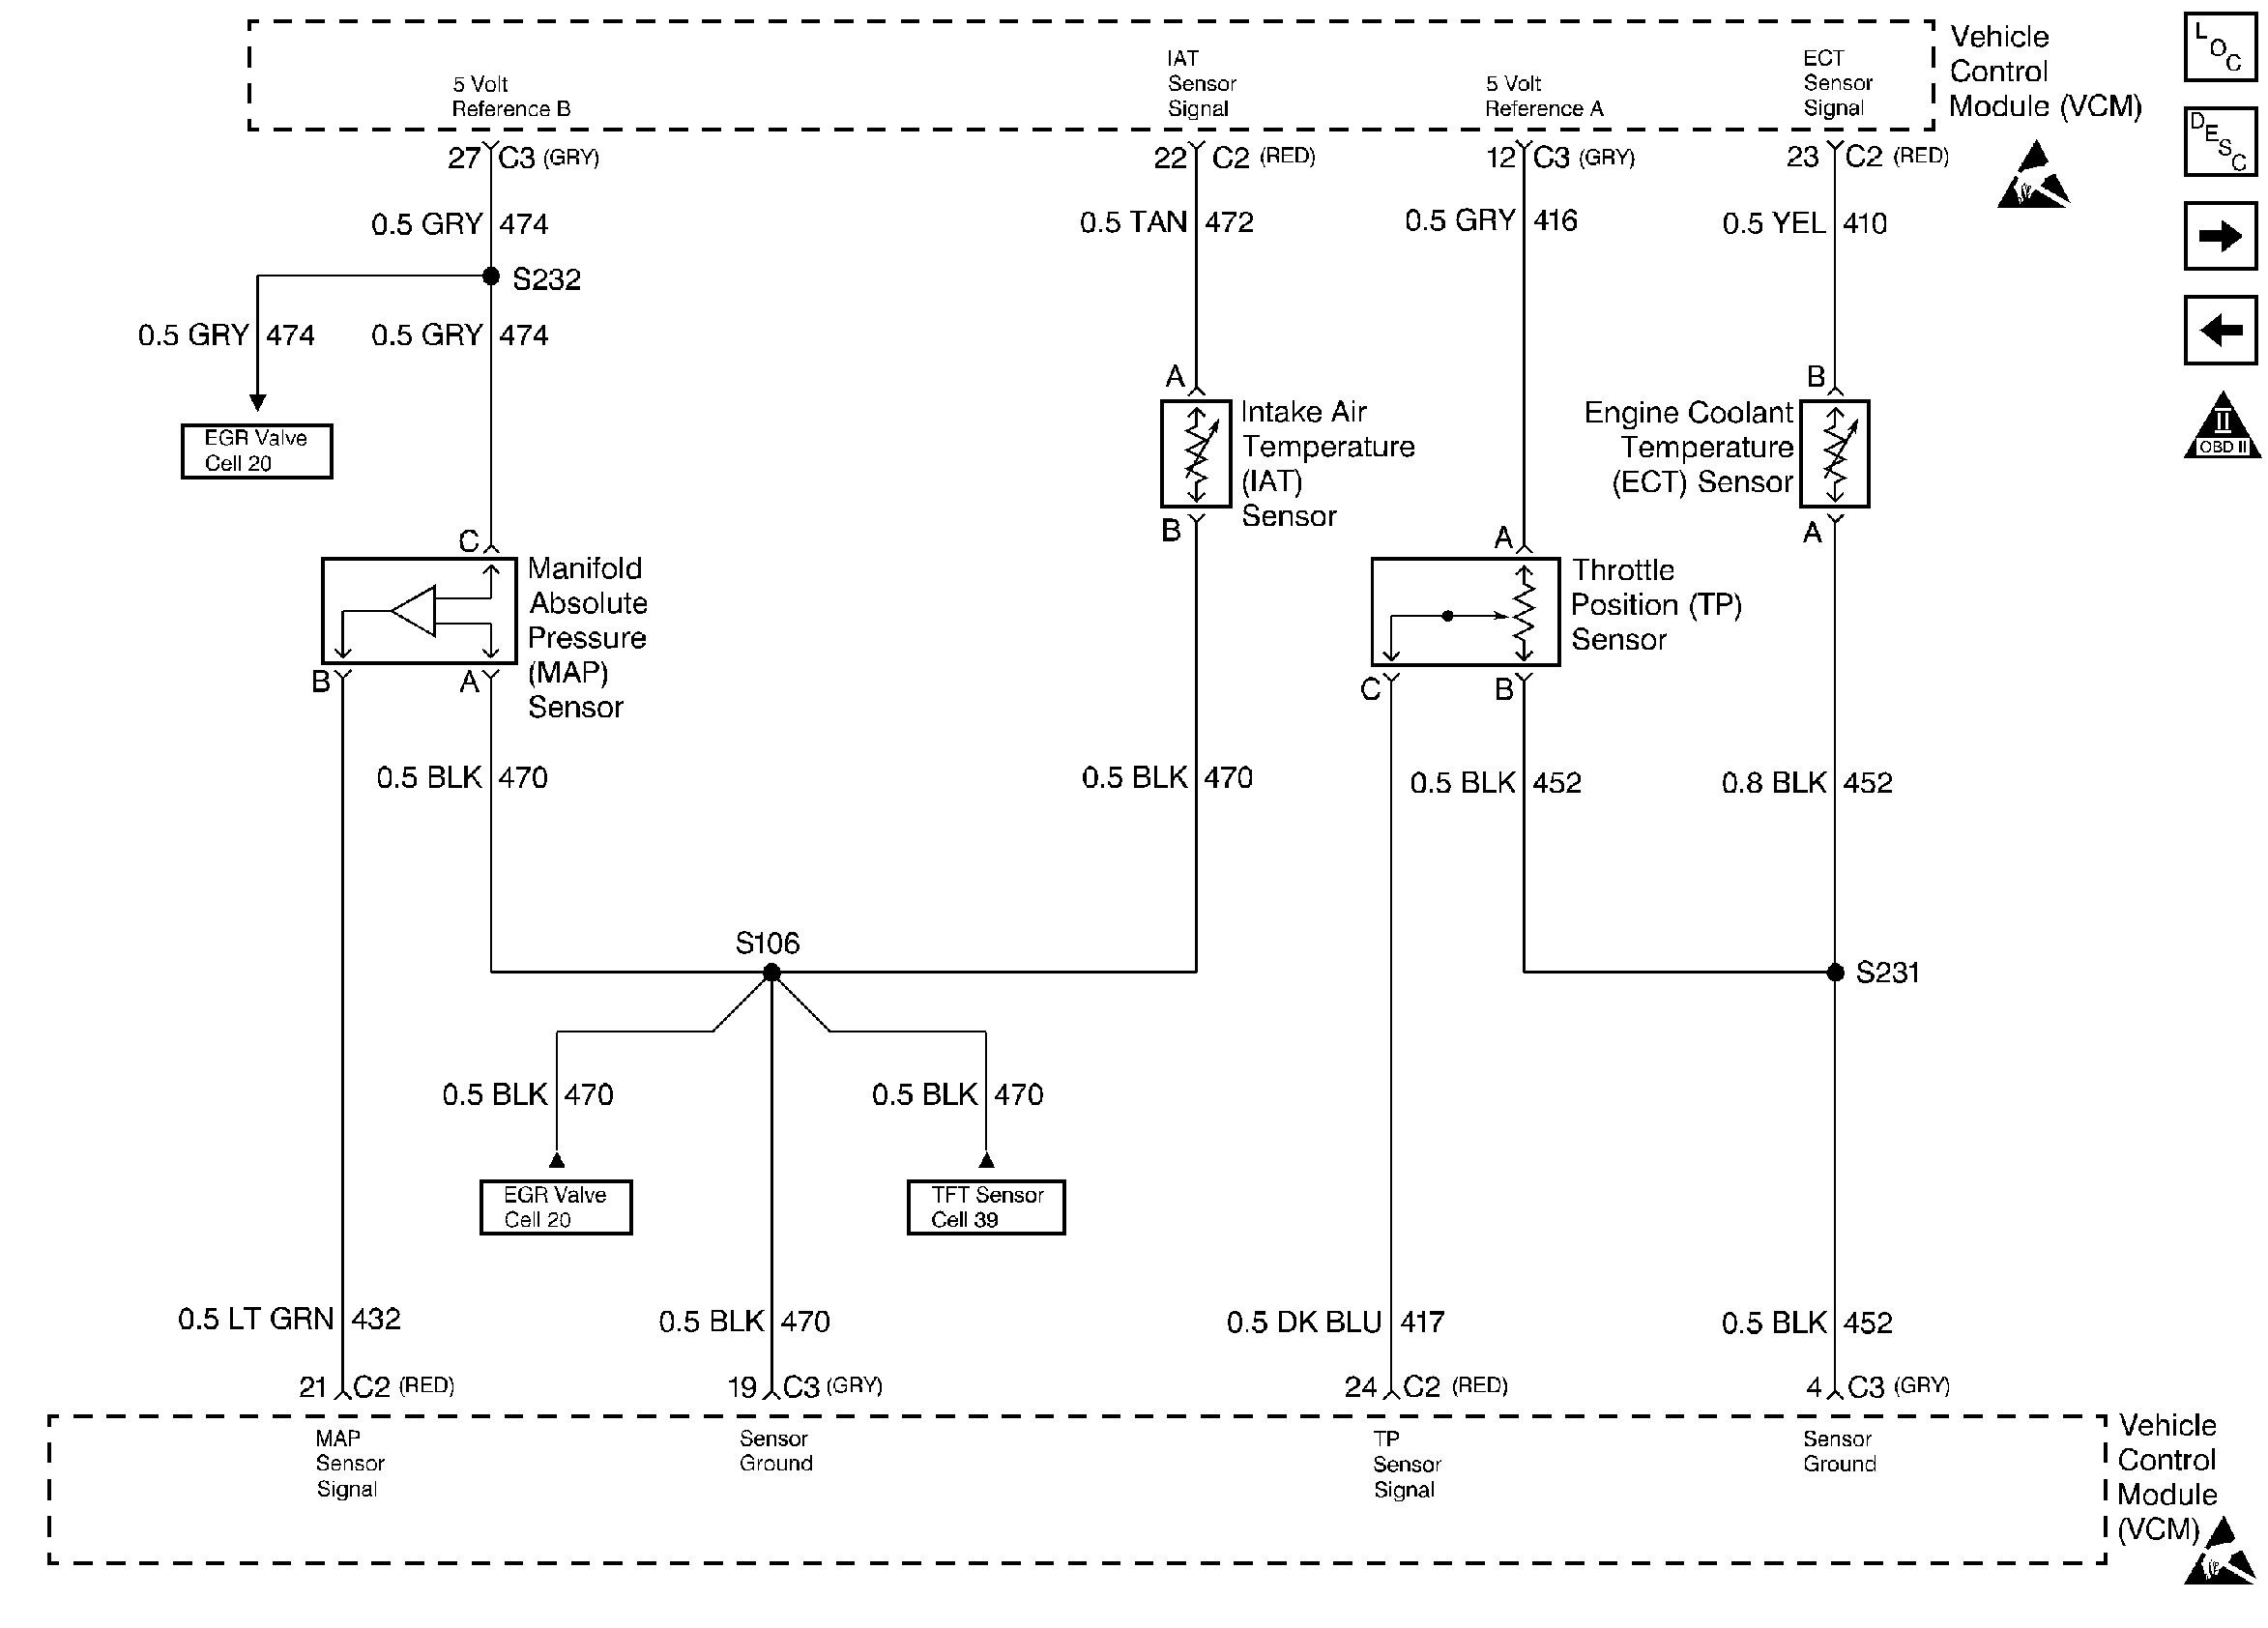 1999 Chevy Tahoe Engine Diagram 5 7 Vortec Wiring Diagram 4 3l ...